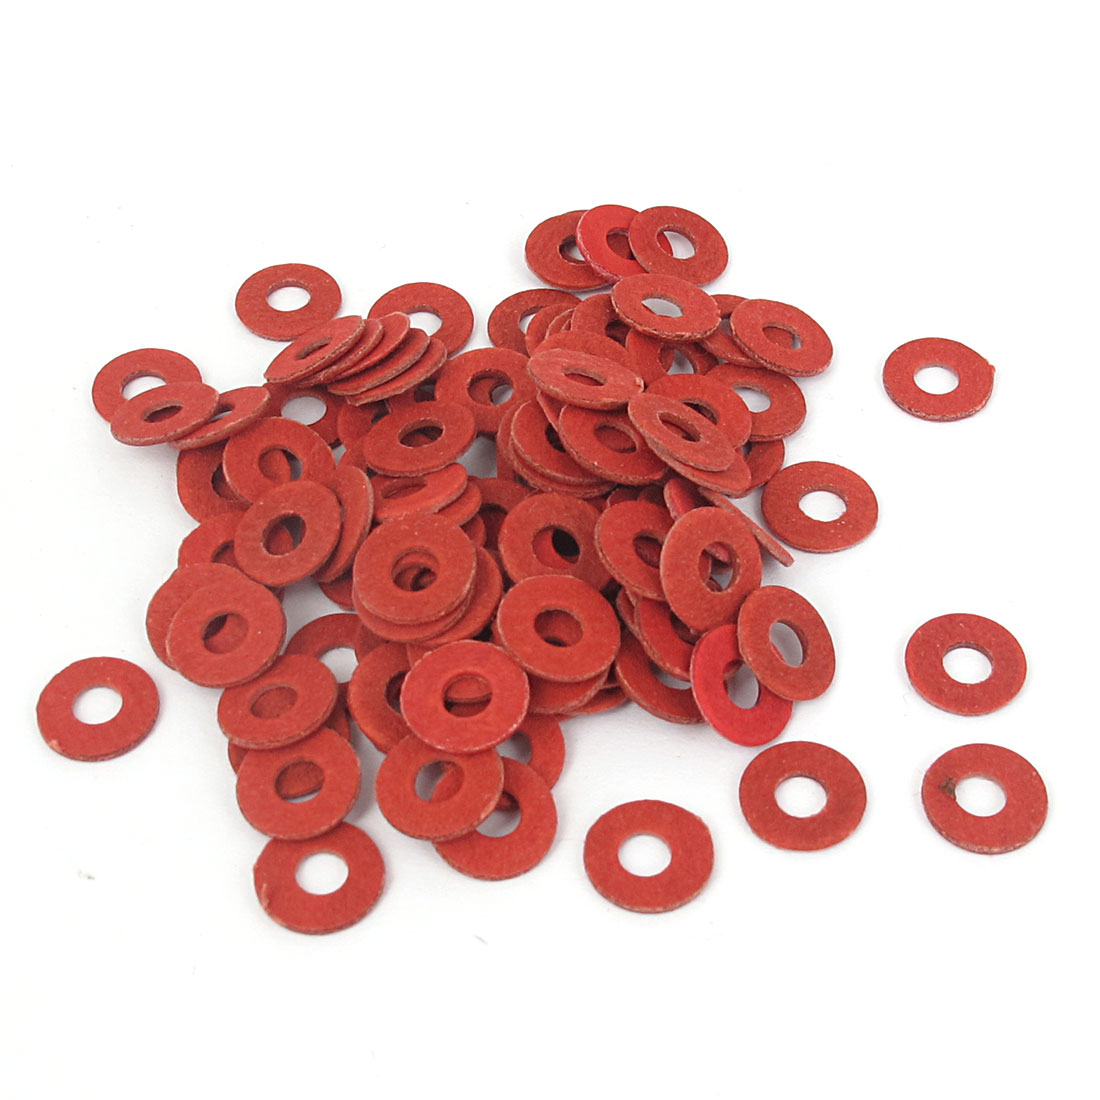 4mmx10mmx1mm Fiber Motherboard Insulating Gasket Flat Washer Red 100pcs